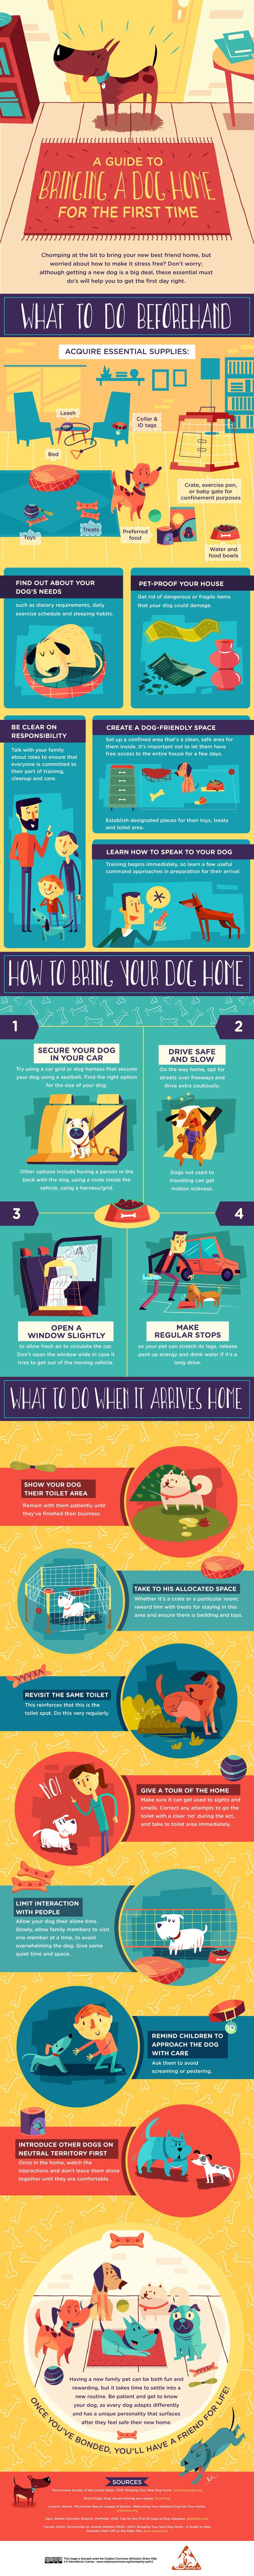 A Guide To Bringing a Dog Home For The First Time #Infographic #Animal #Dogs